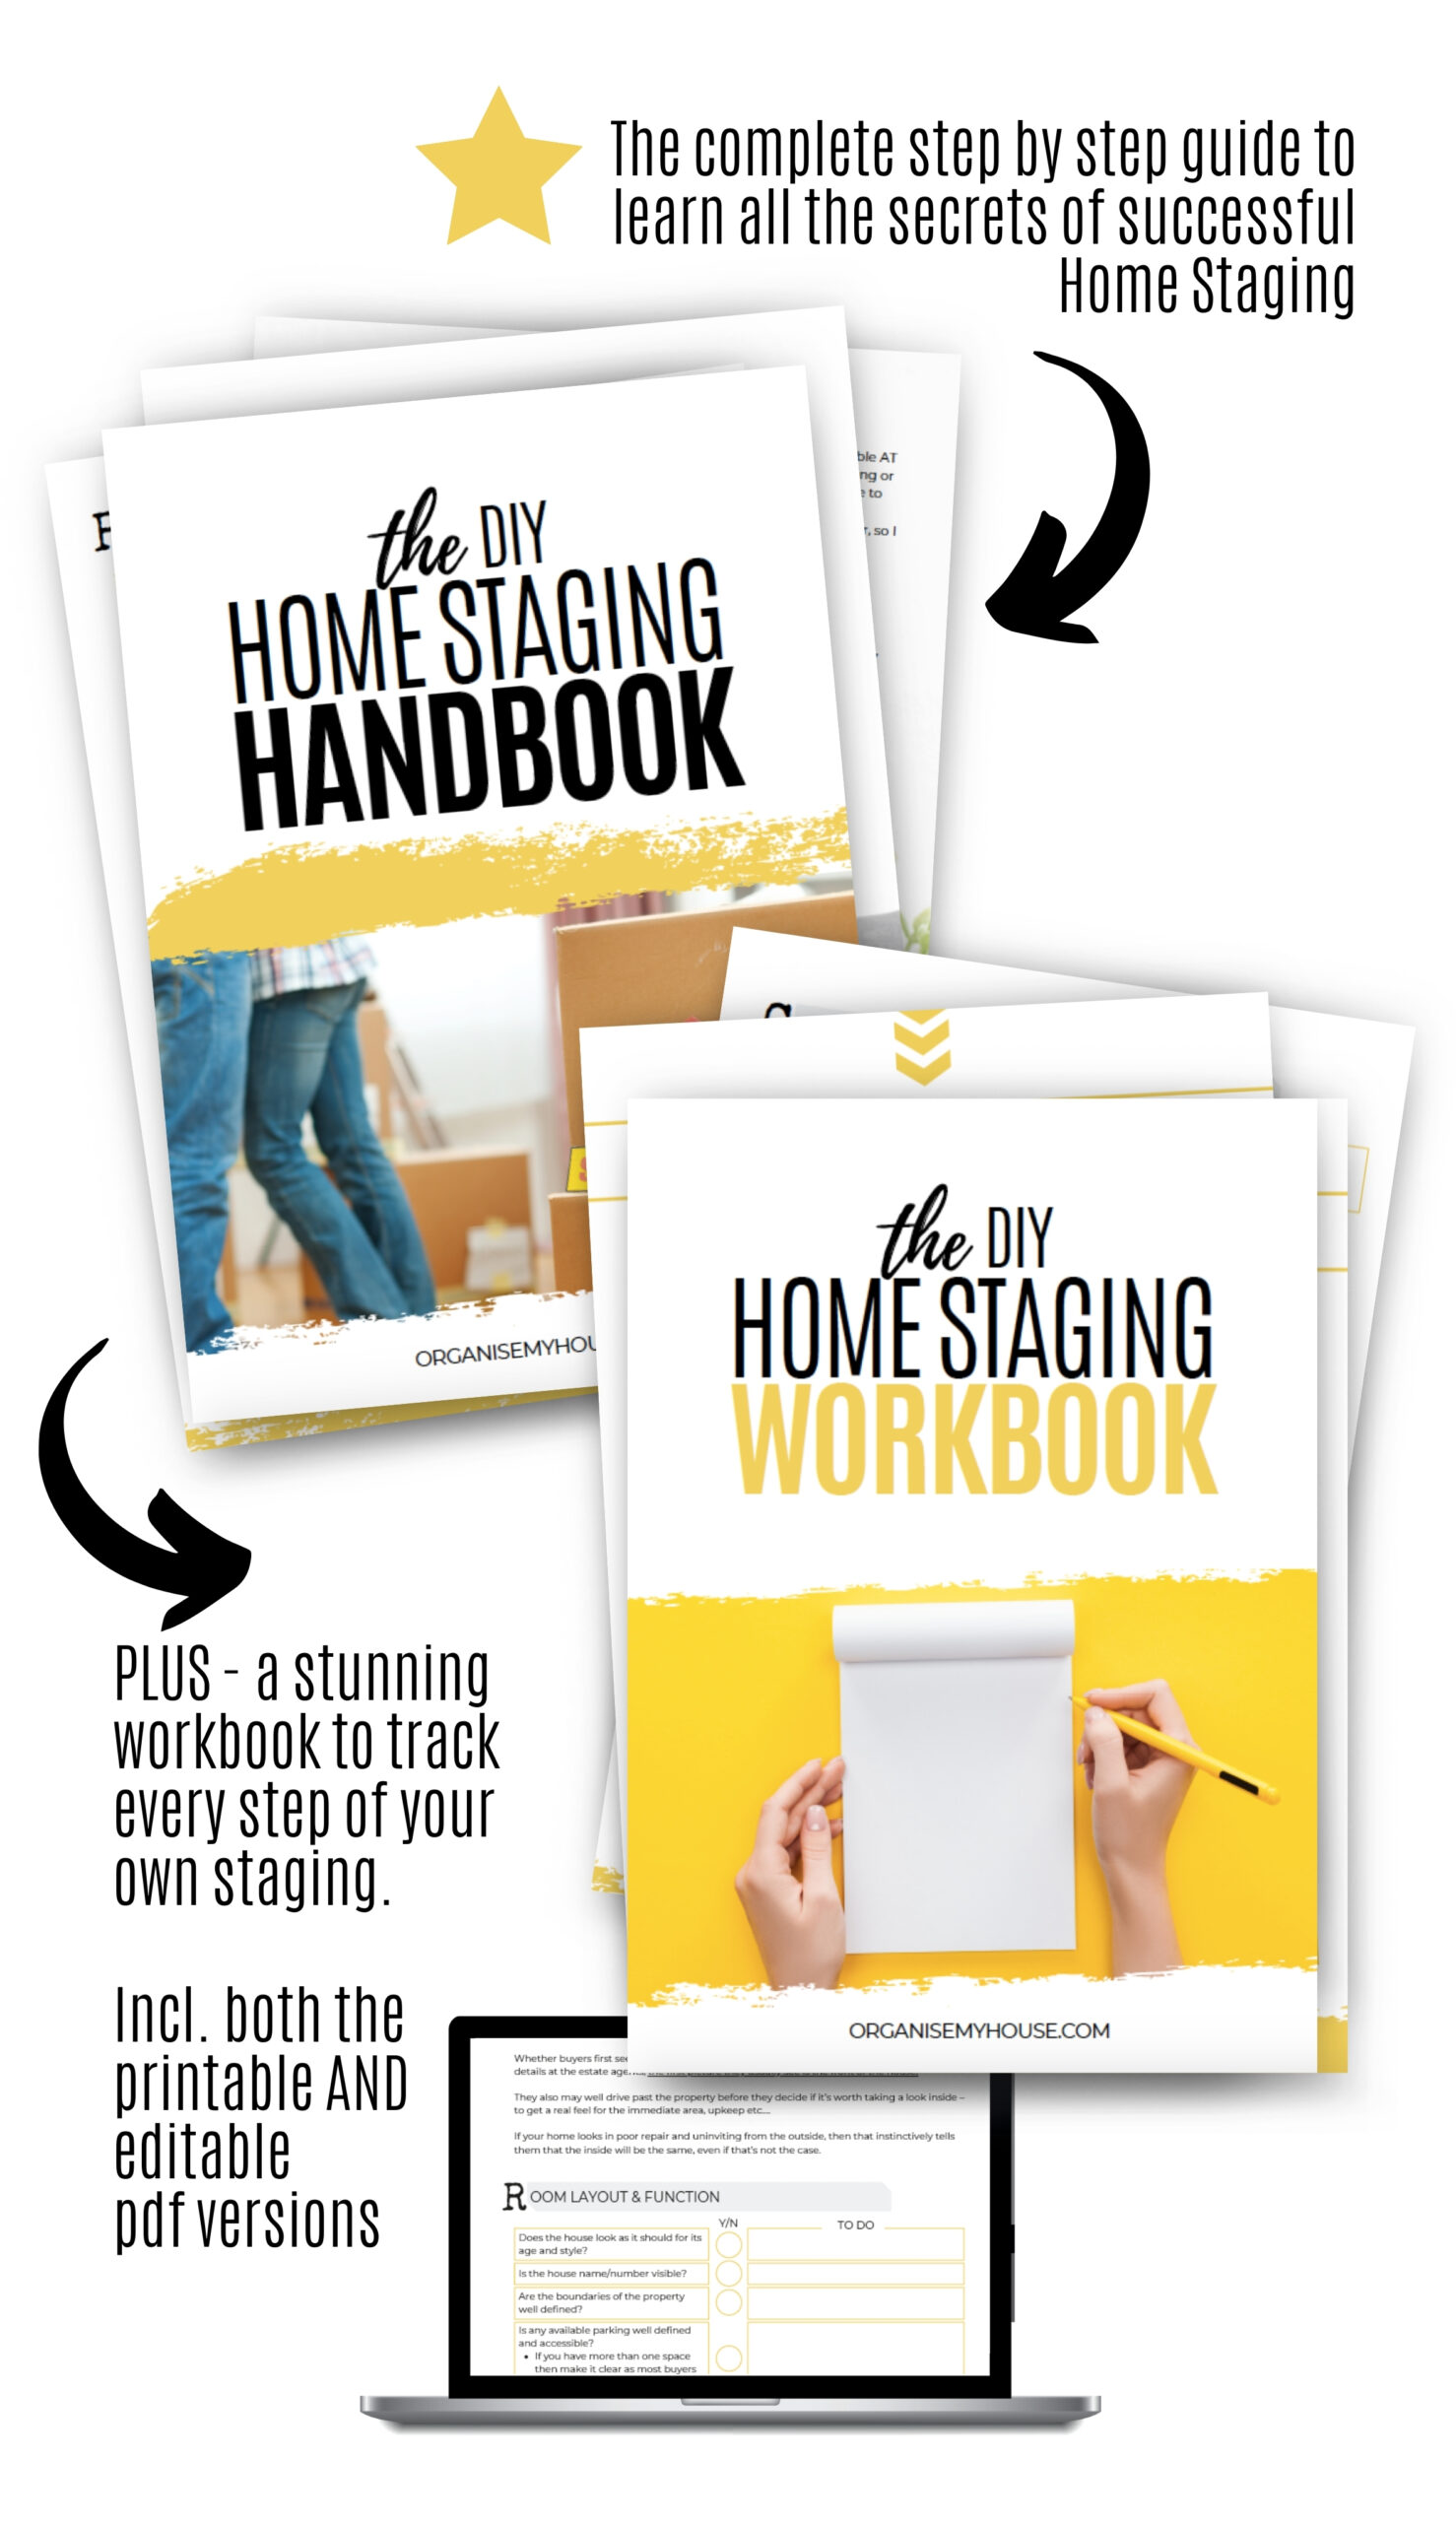 The DIY Home Staging Toolkit package